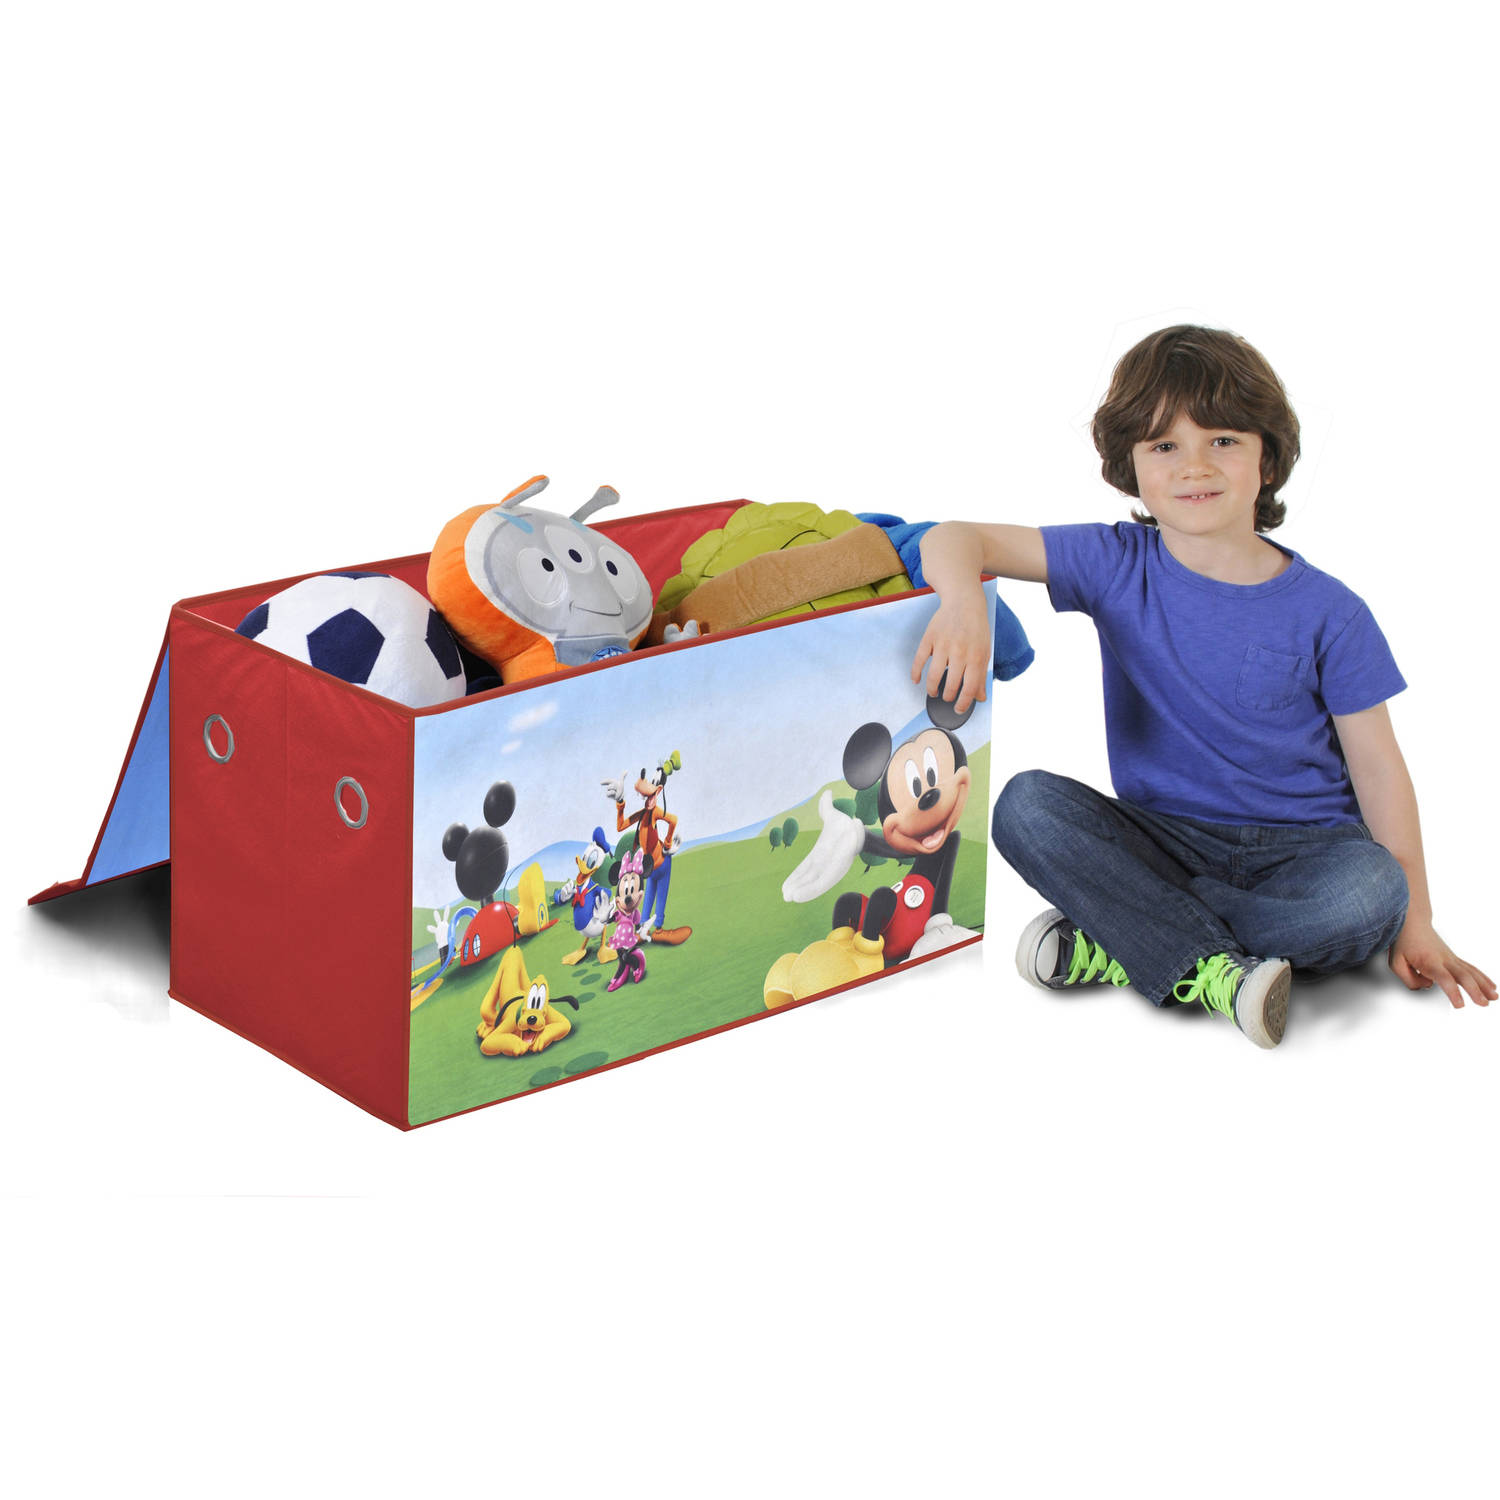 Disney Mickey Mouse Collapsible Storage Trunk   Walmart.com